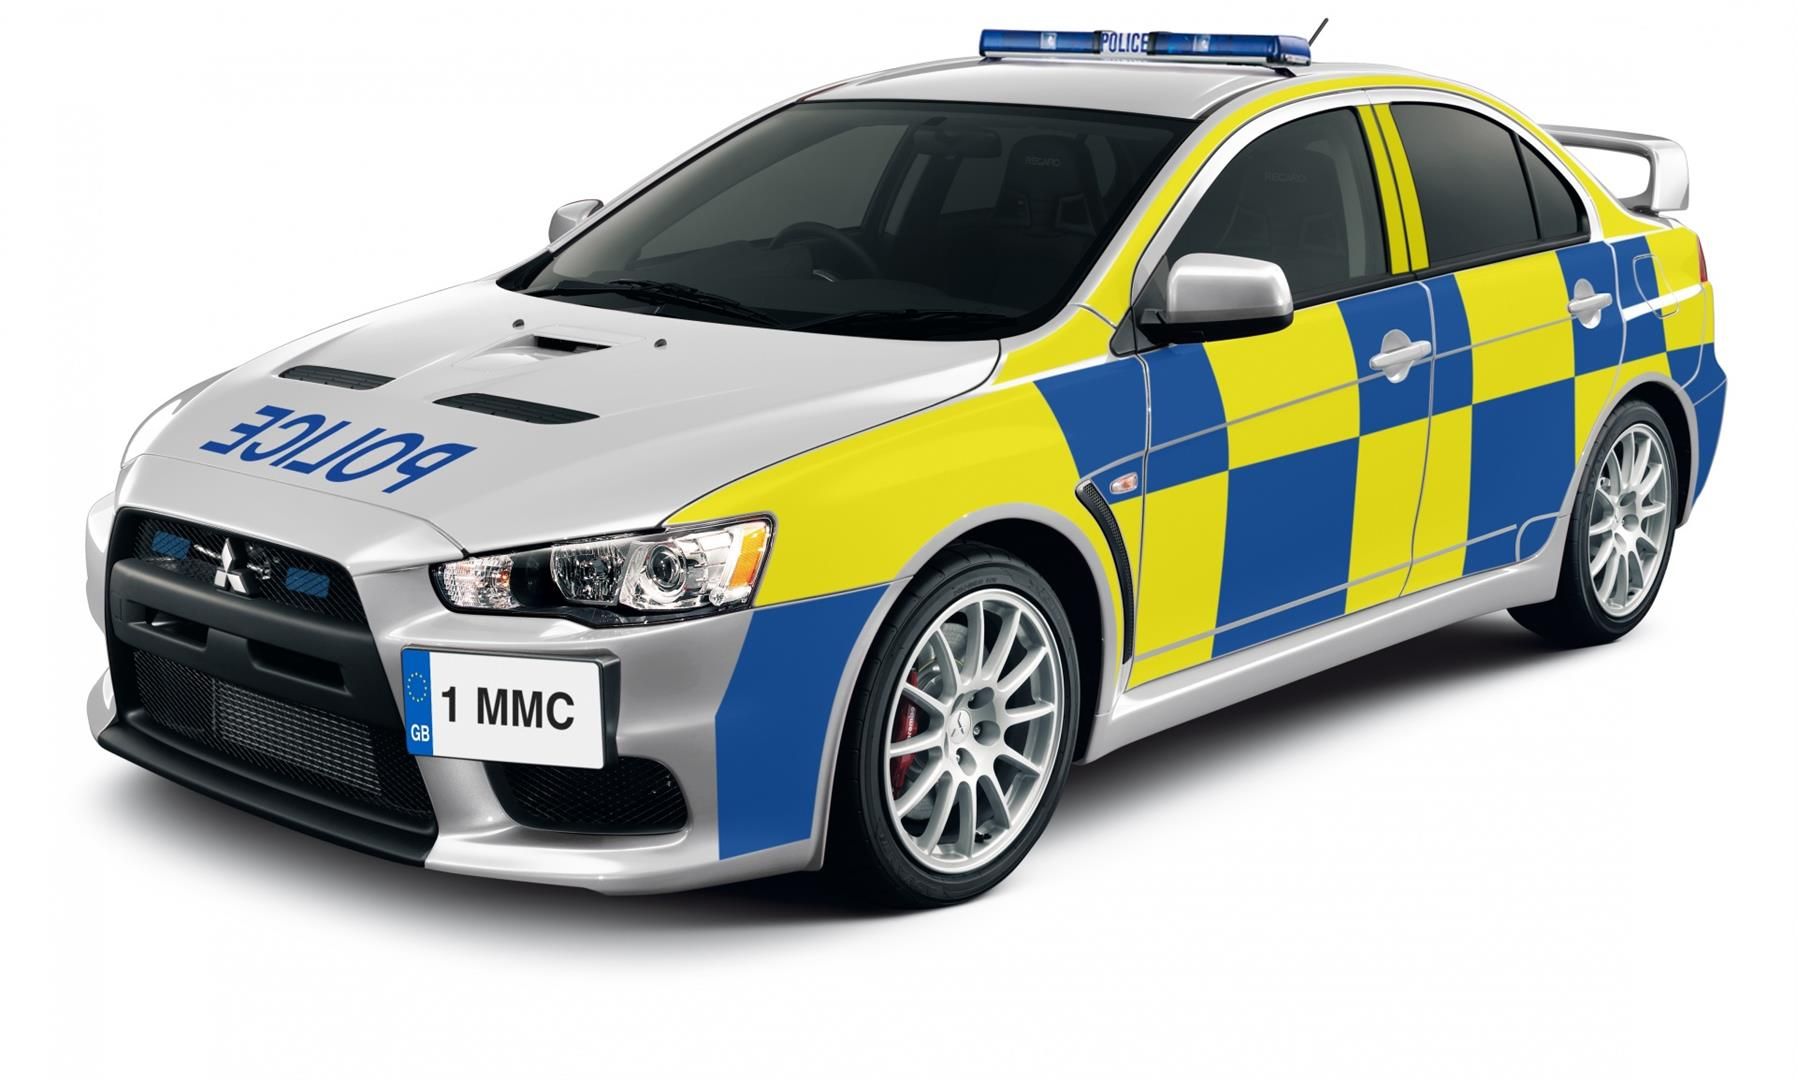 british police car clipart 3 clipart station emergency clip art seconds count emergency clip art picture signs